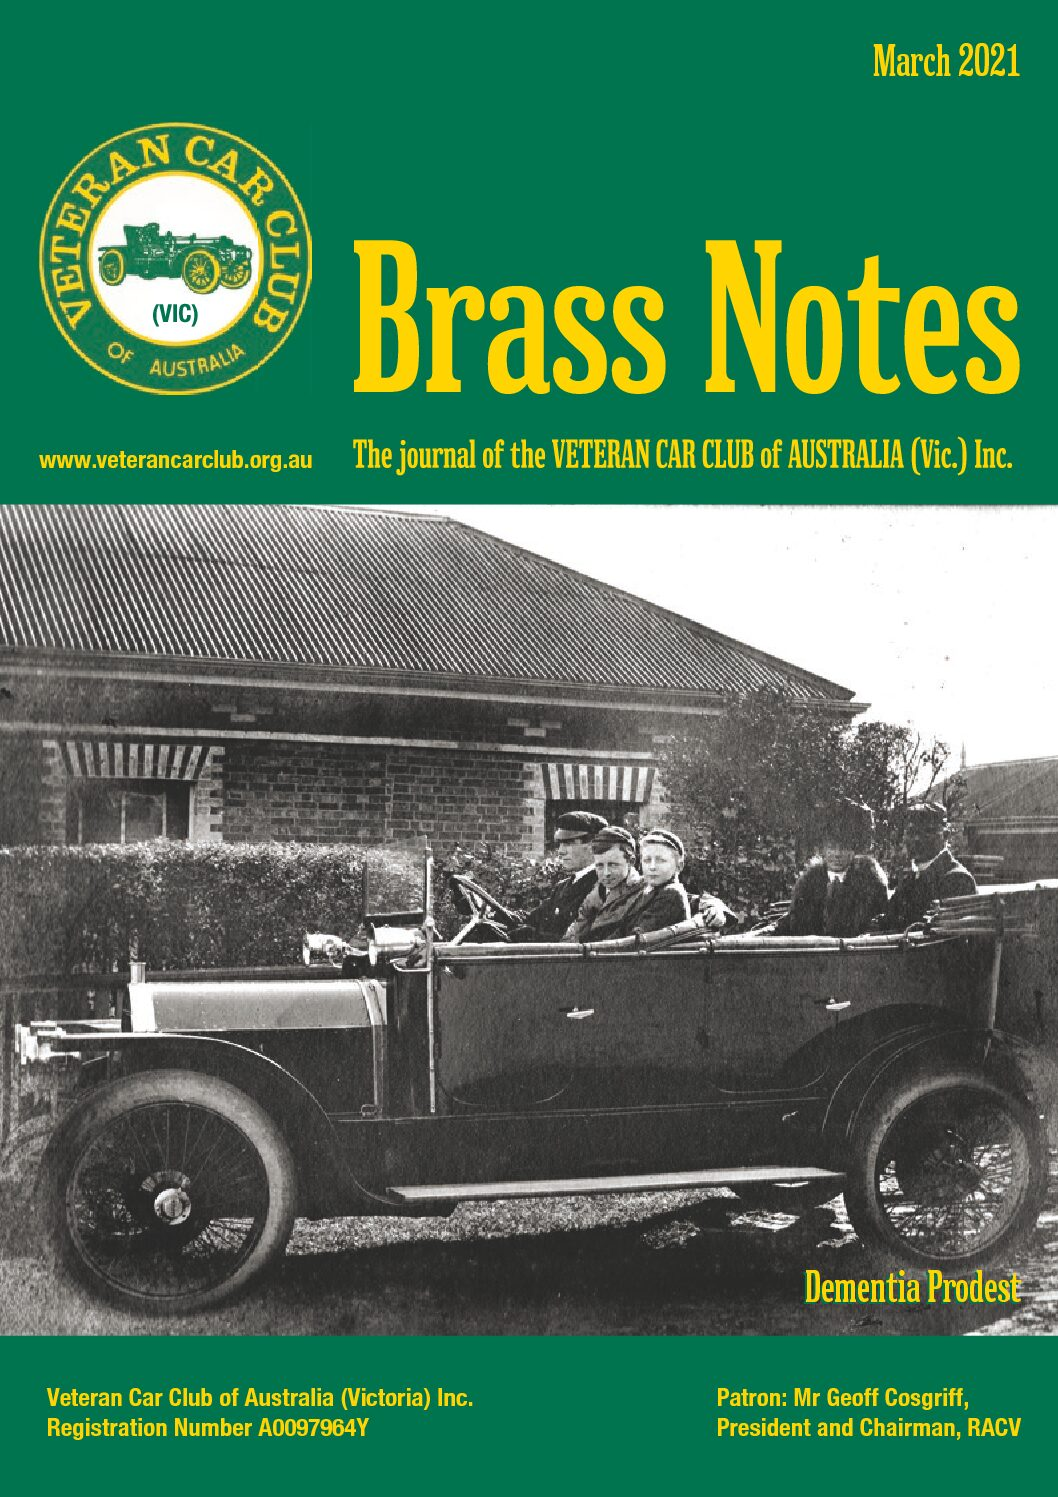 Brass Notes March 2021